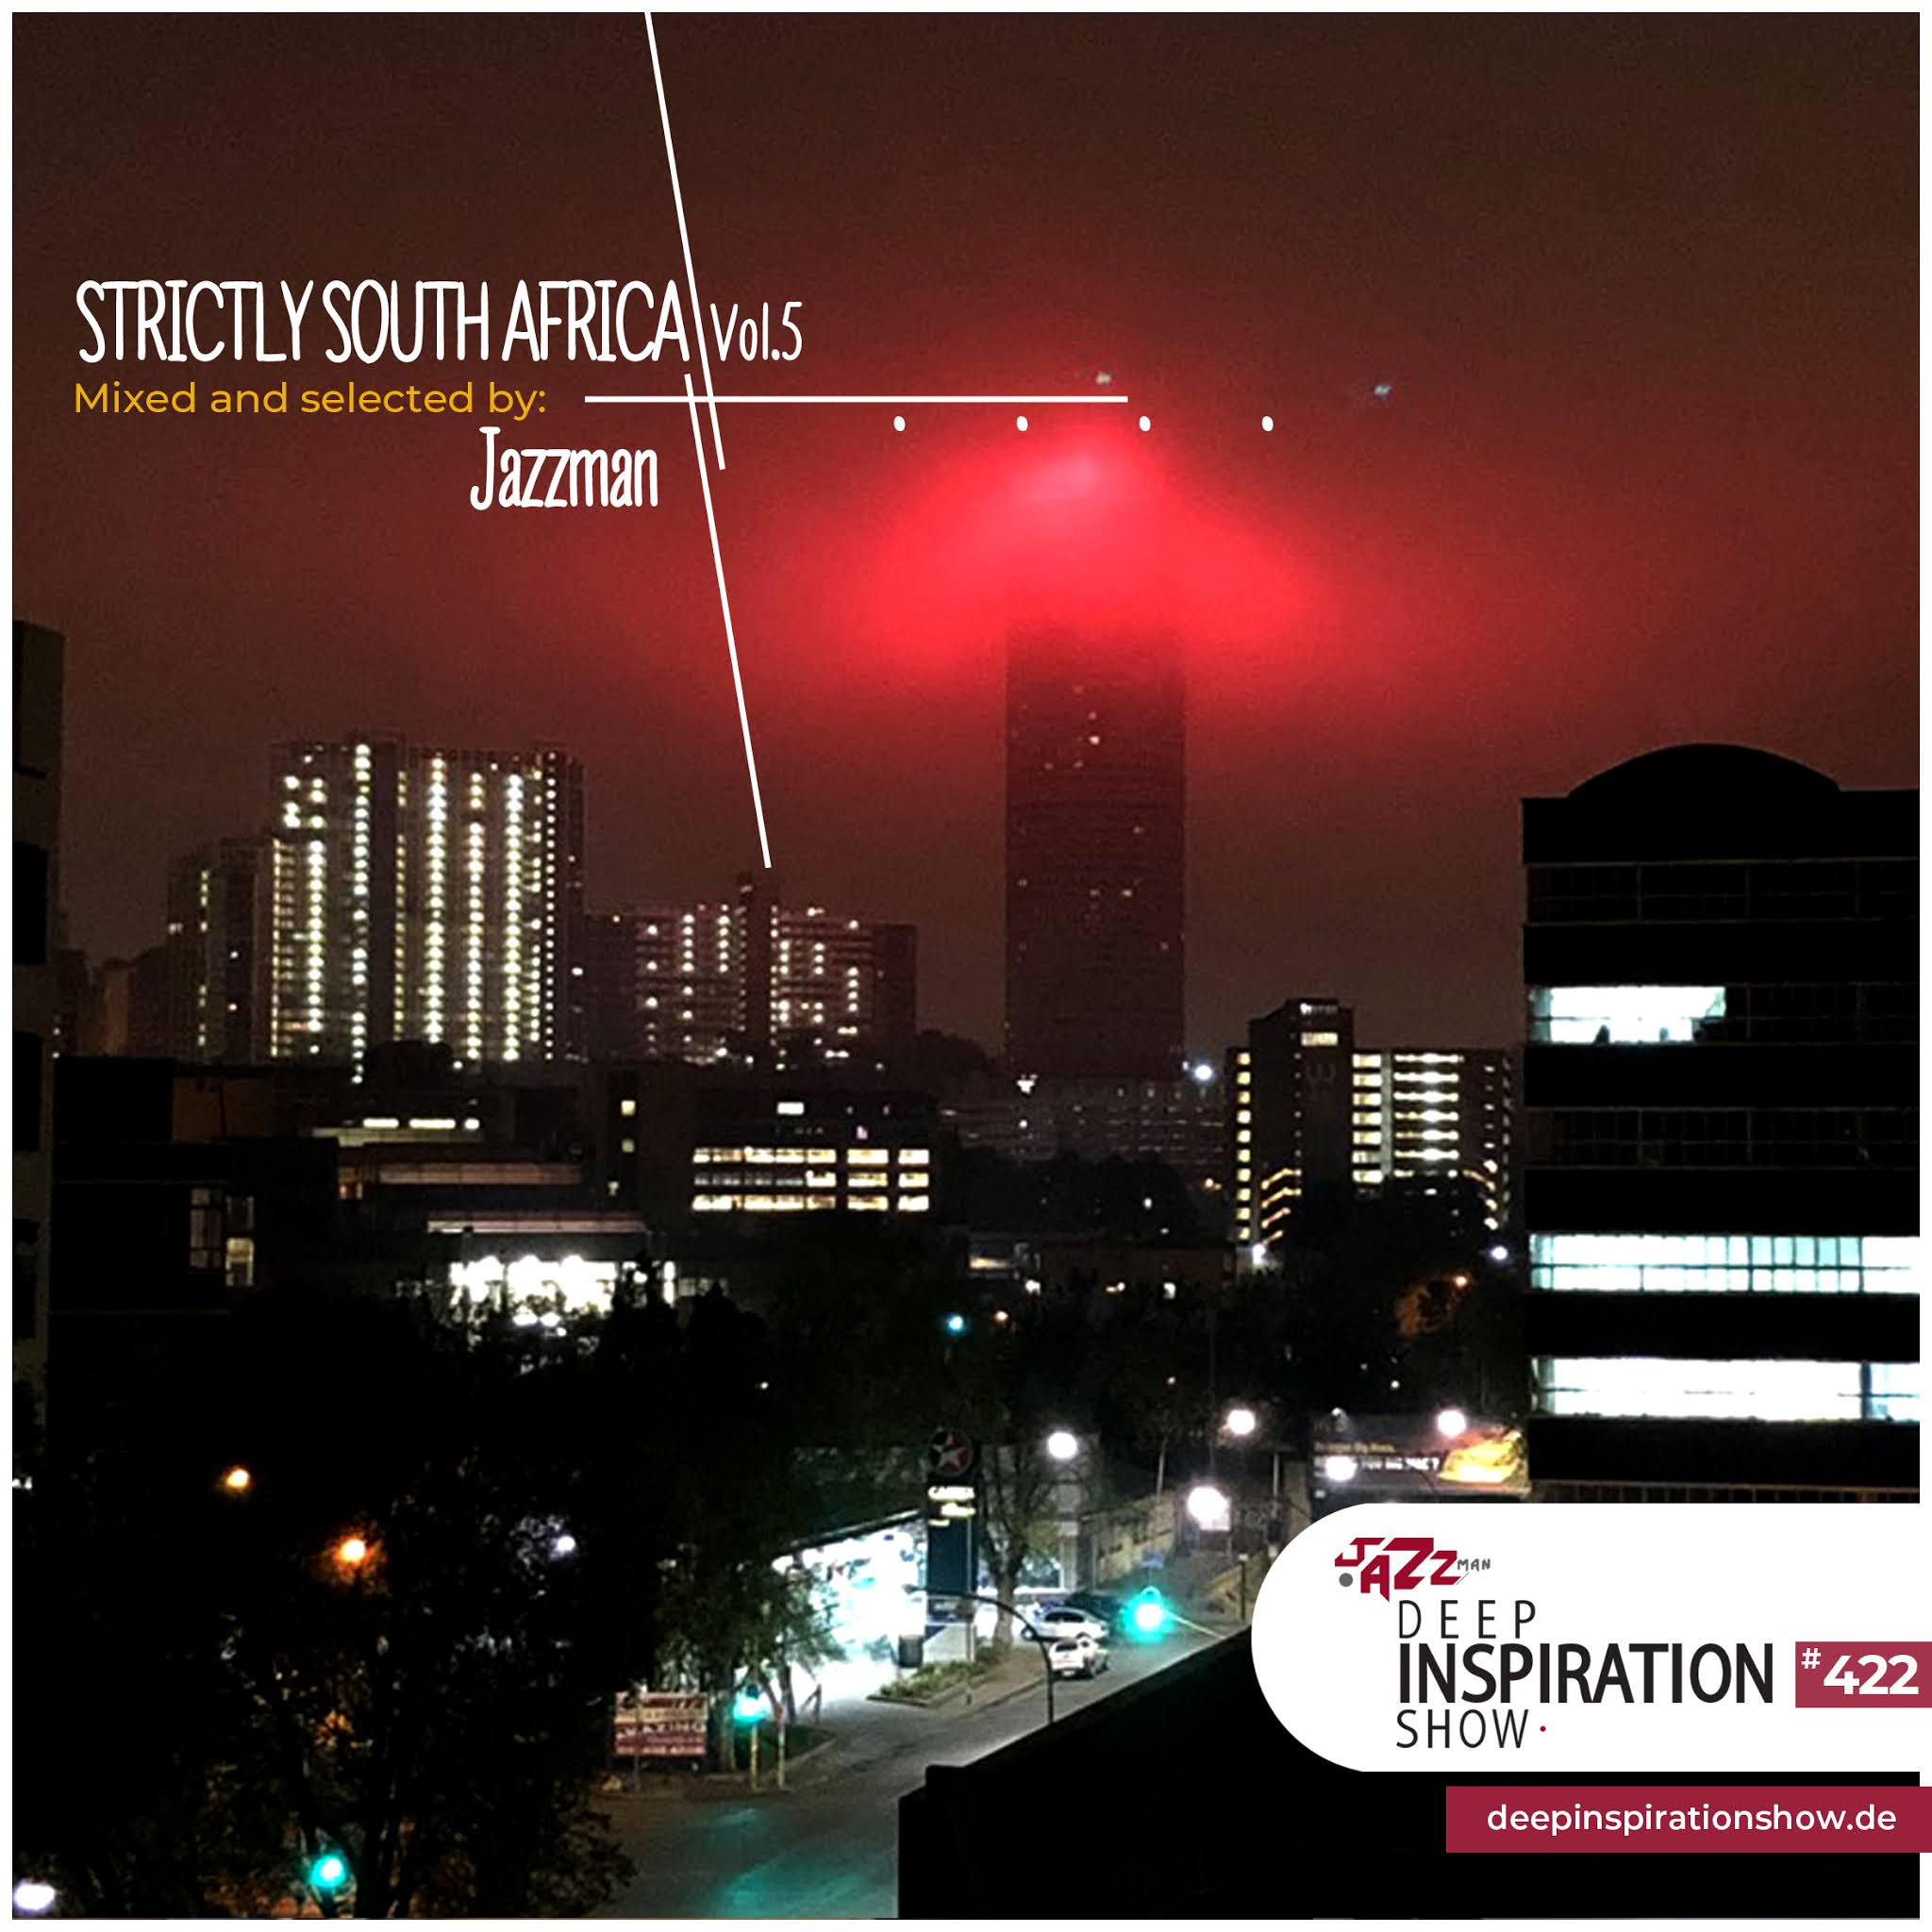 """Show 422 """"Strictly South Africa Vol. 5"""""""